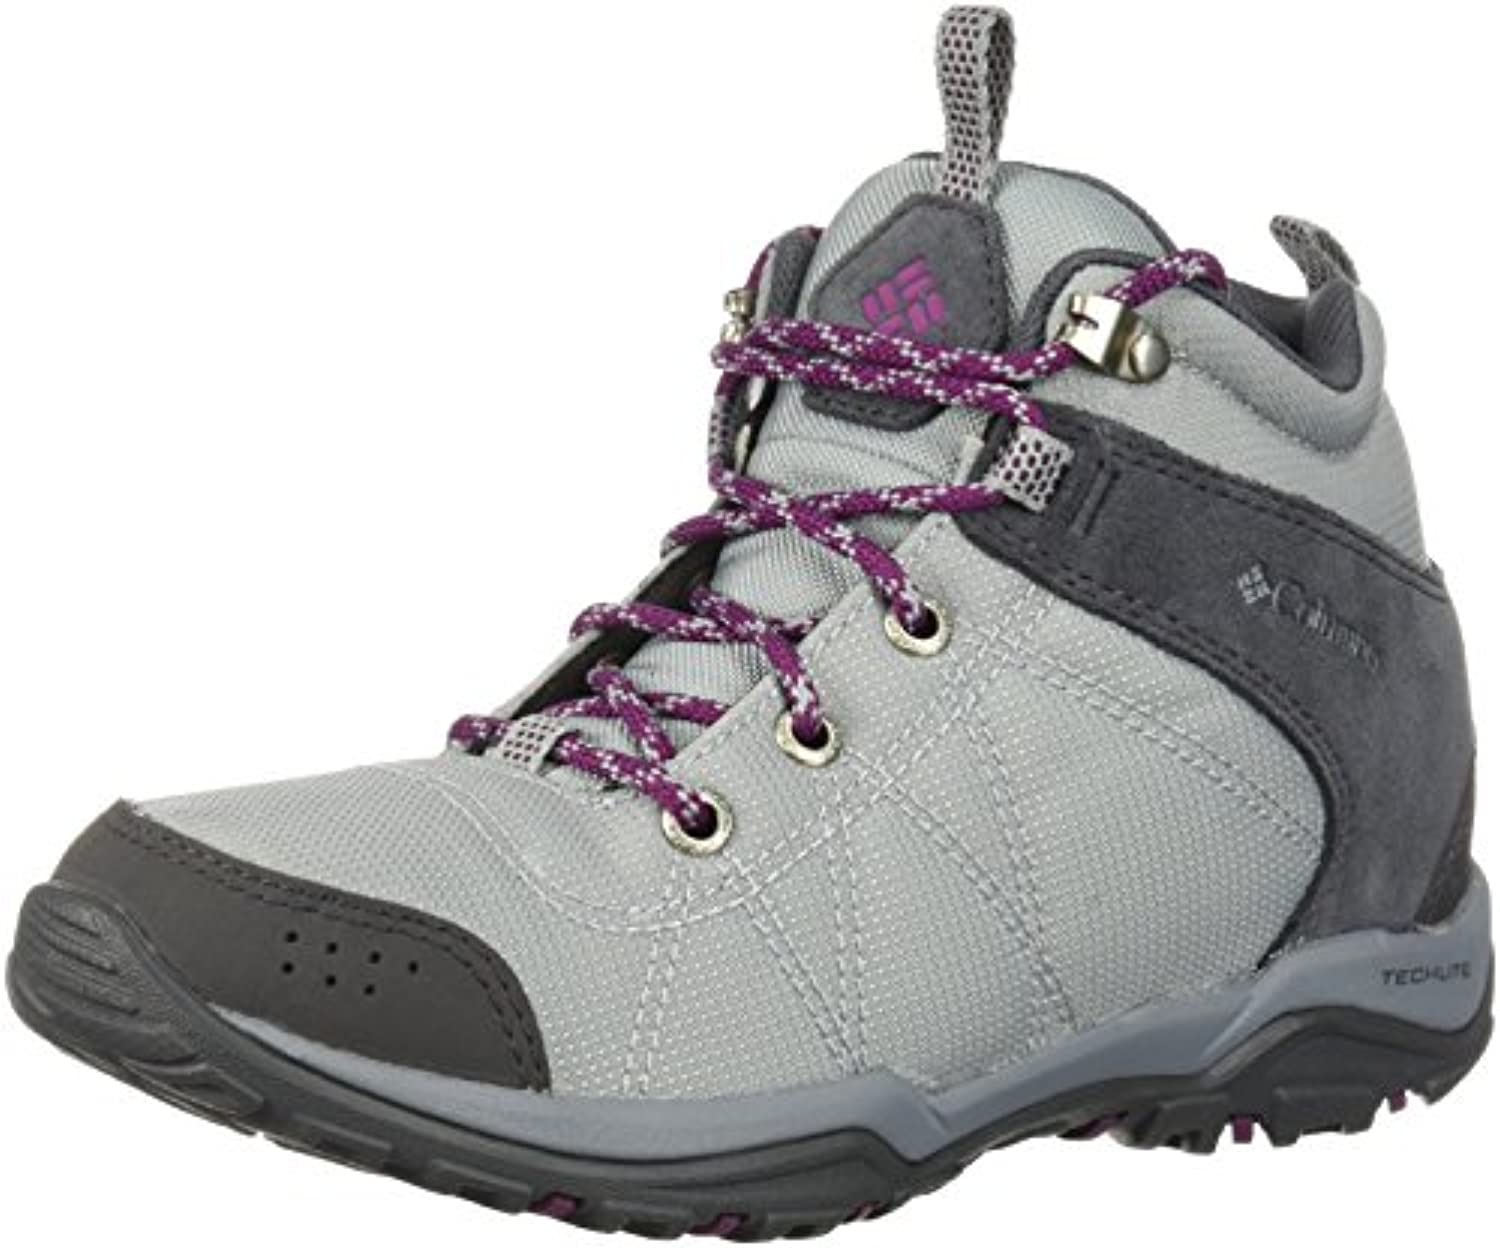 Columbia Wouomo Fire Venture Mid, Tessuto Donna | a prezzi prezzi prezzi accessibili  | Uomo/Donna Scarpa  d2784a